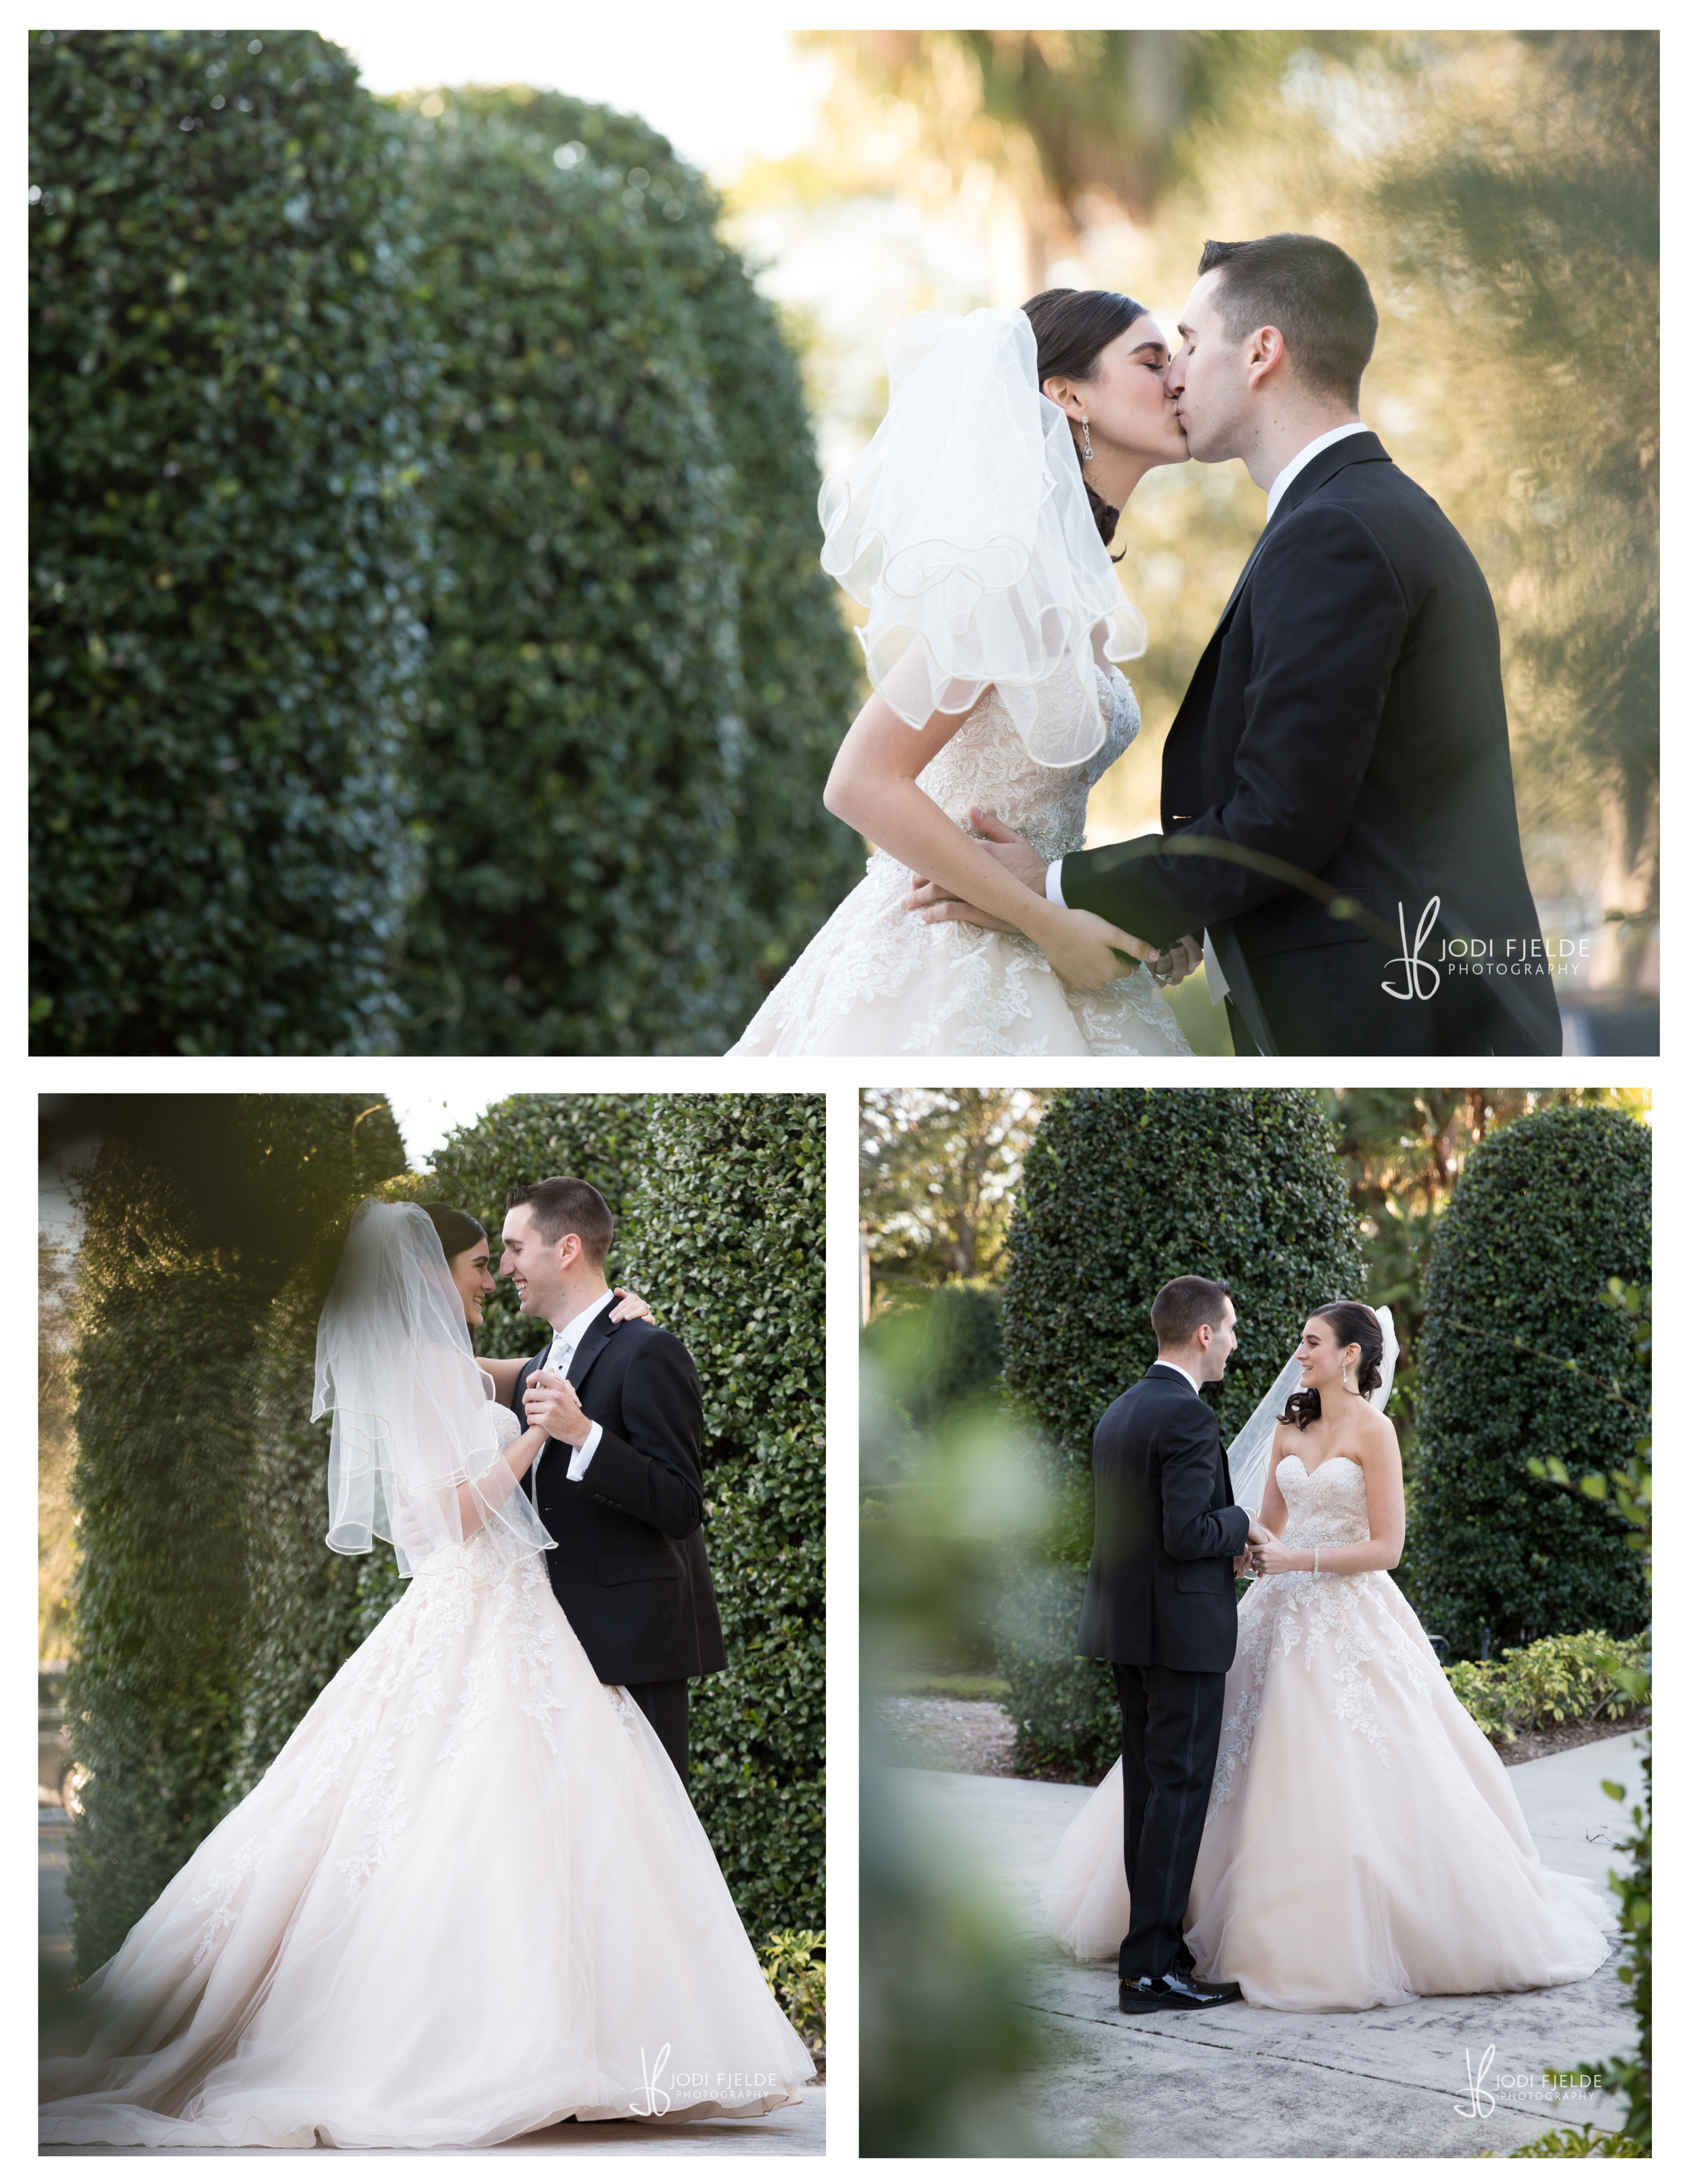 Benvenuto_Palm_Beach_Wedding_Jewish_Michelle & Jason_Jodi_Fjedle_Photography 25.jpg